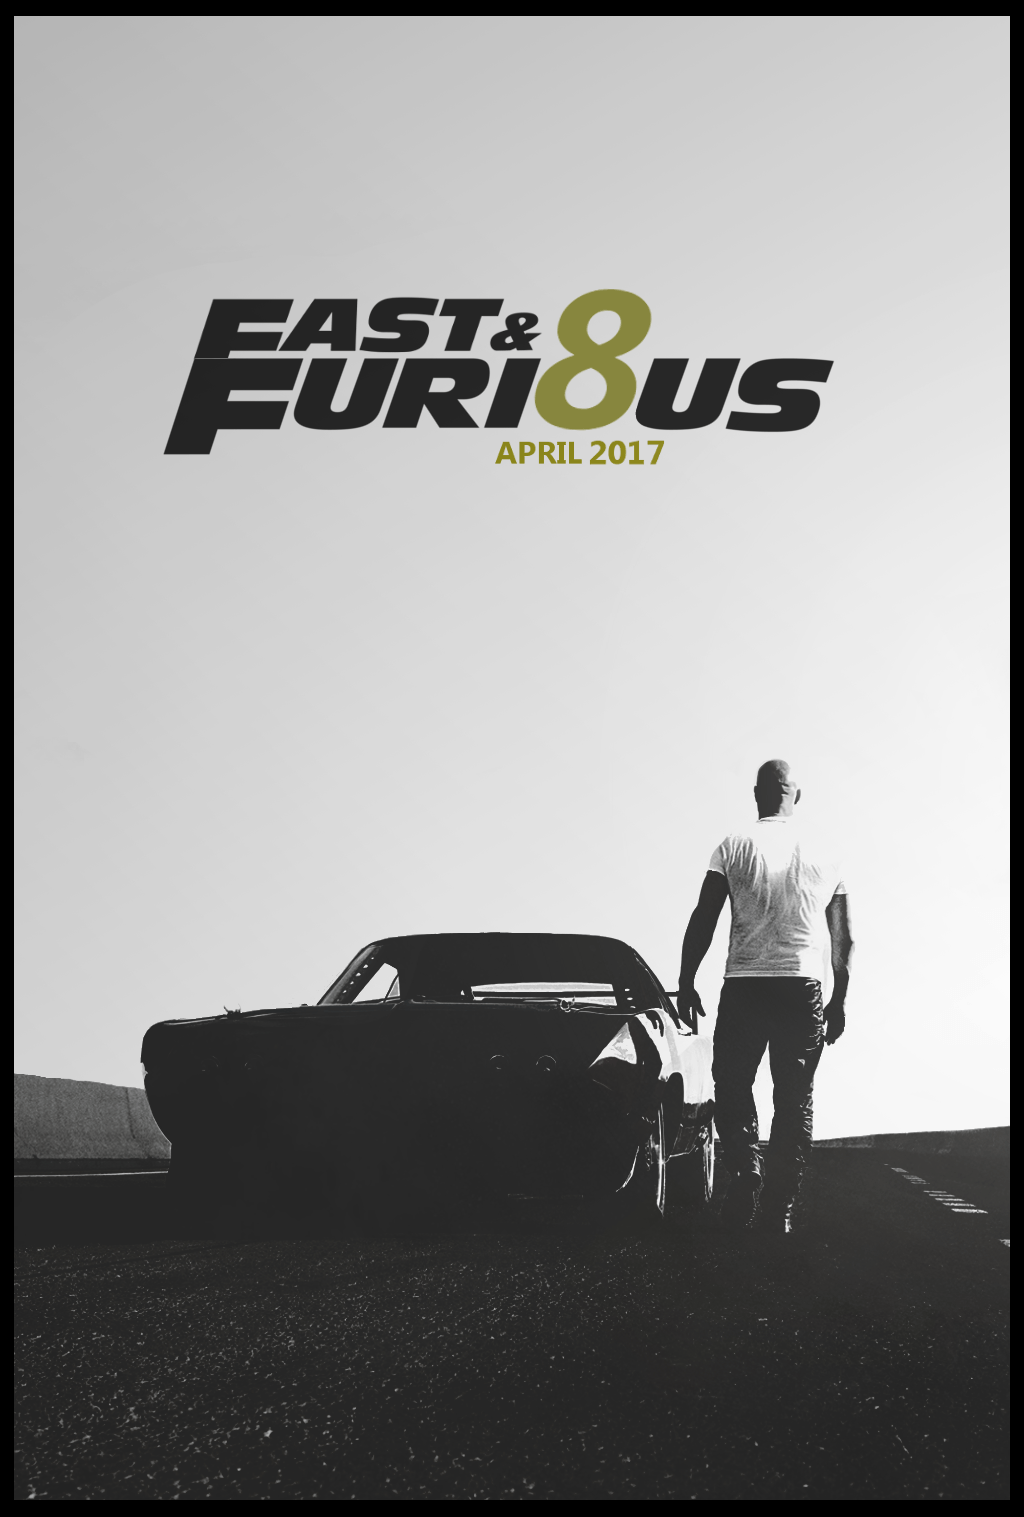 Fast and Furious 8 Movie 4k Uhd wallpaper 2017 - HD Wallpapers